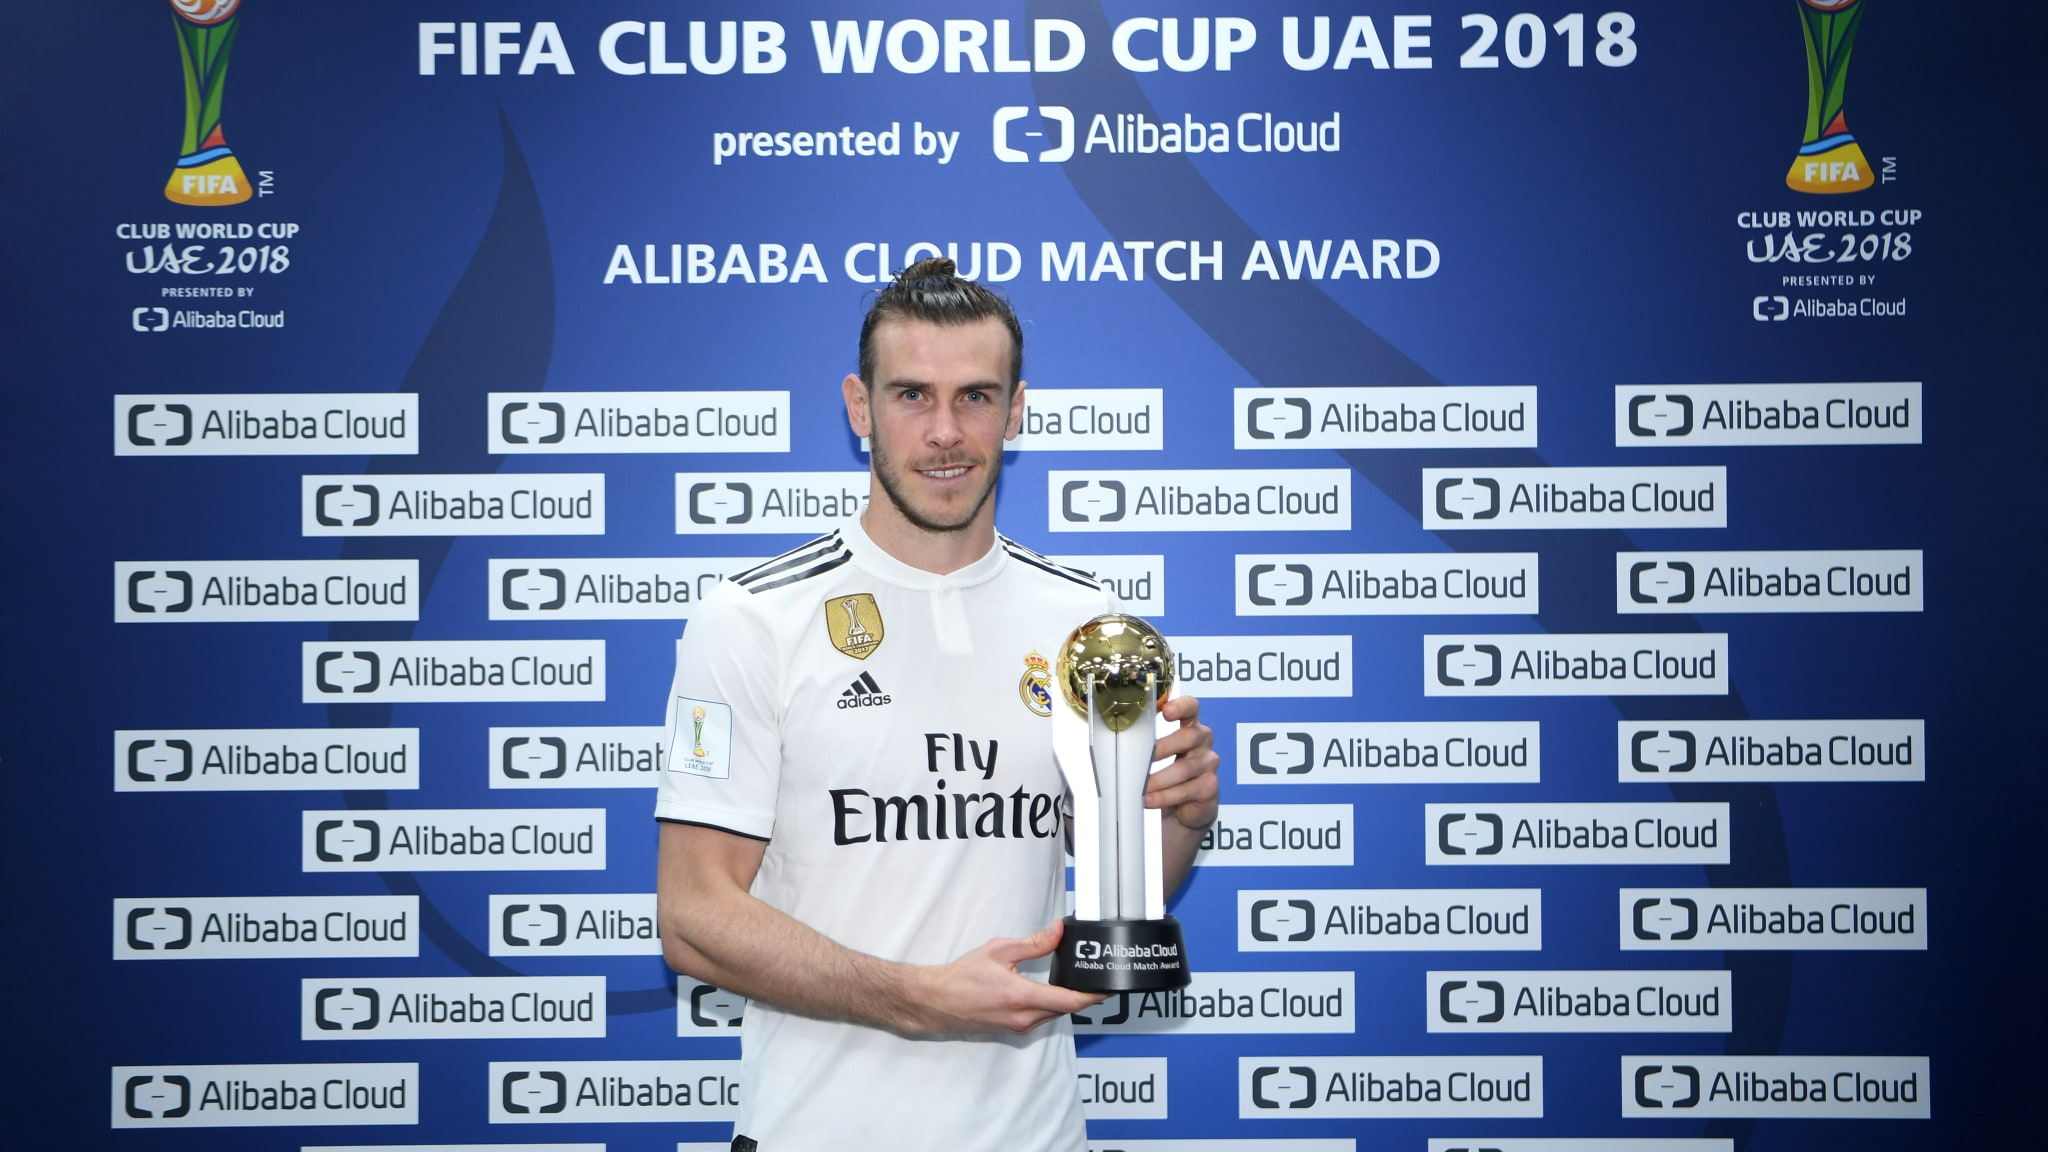 G Bale Fifa Club World Cup Uae 2018 , HD Wallpaper & Backgrounds